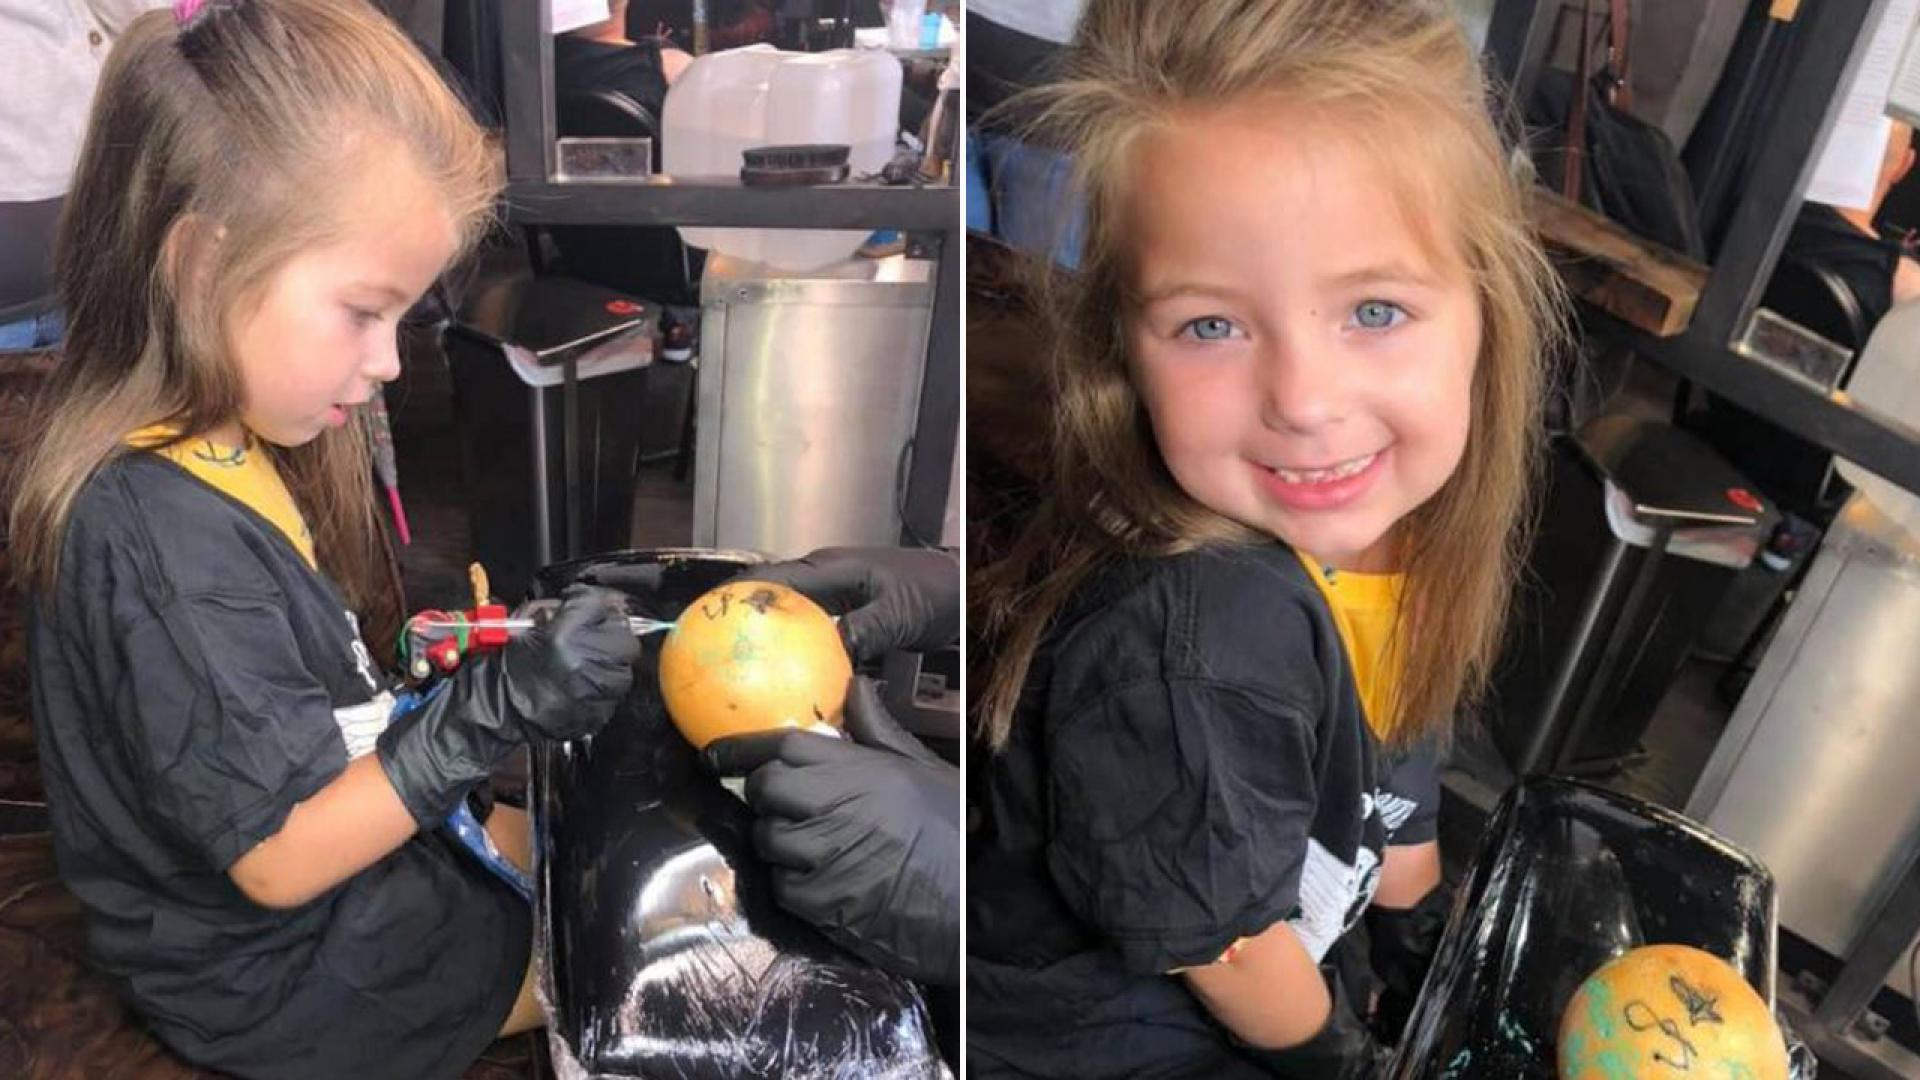 Maja, who has leukemia, got to be a tattoo artist for a day.